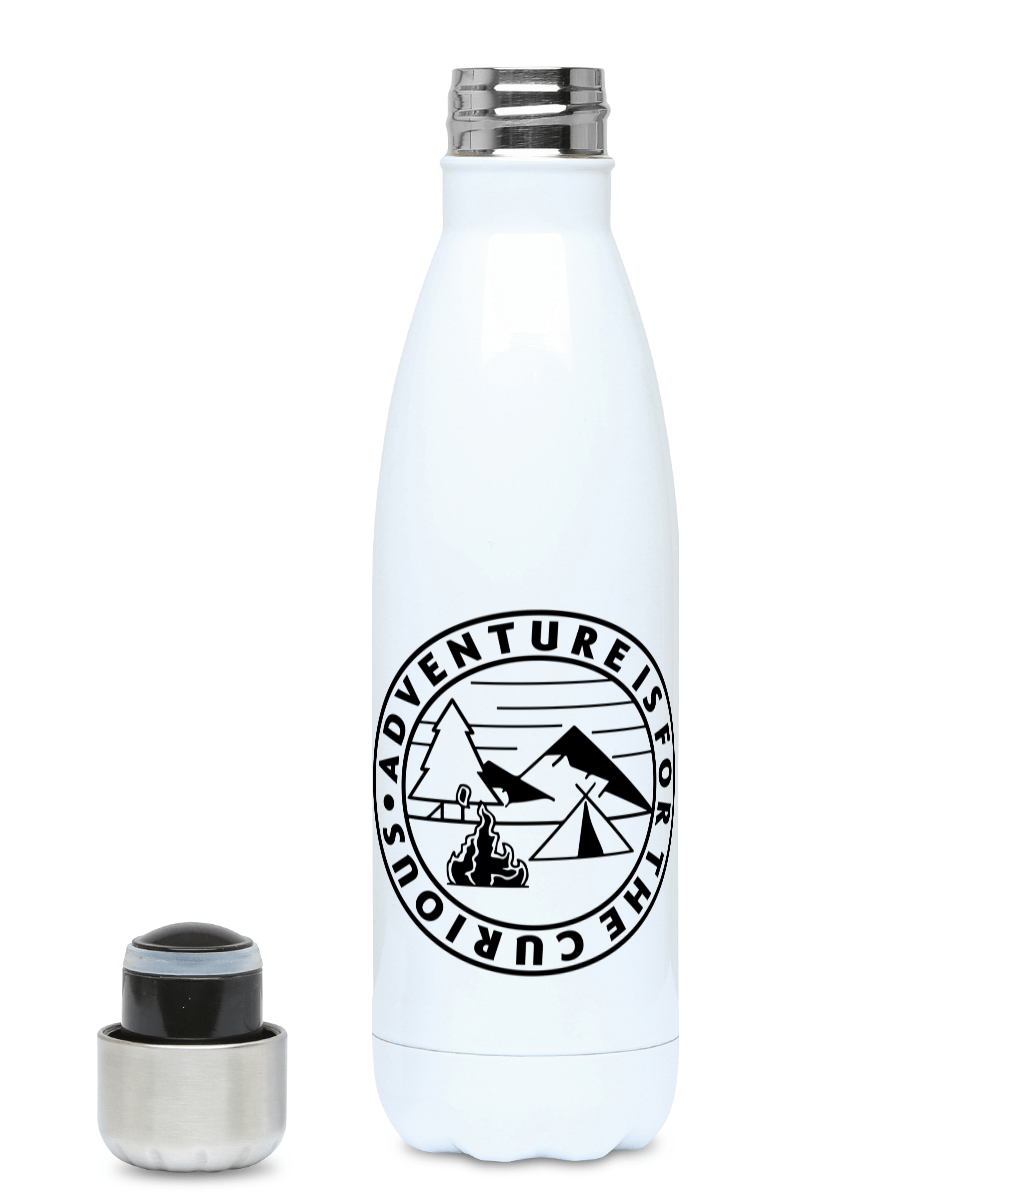 Adventure is for the curious - 500ml Water Bottle, Suggested Products, Pen and Ink Studios - Pen and Ink Studios